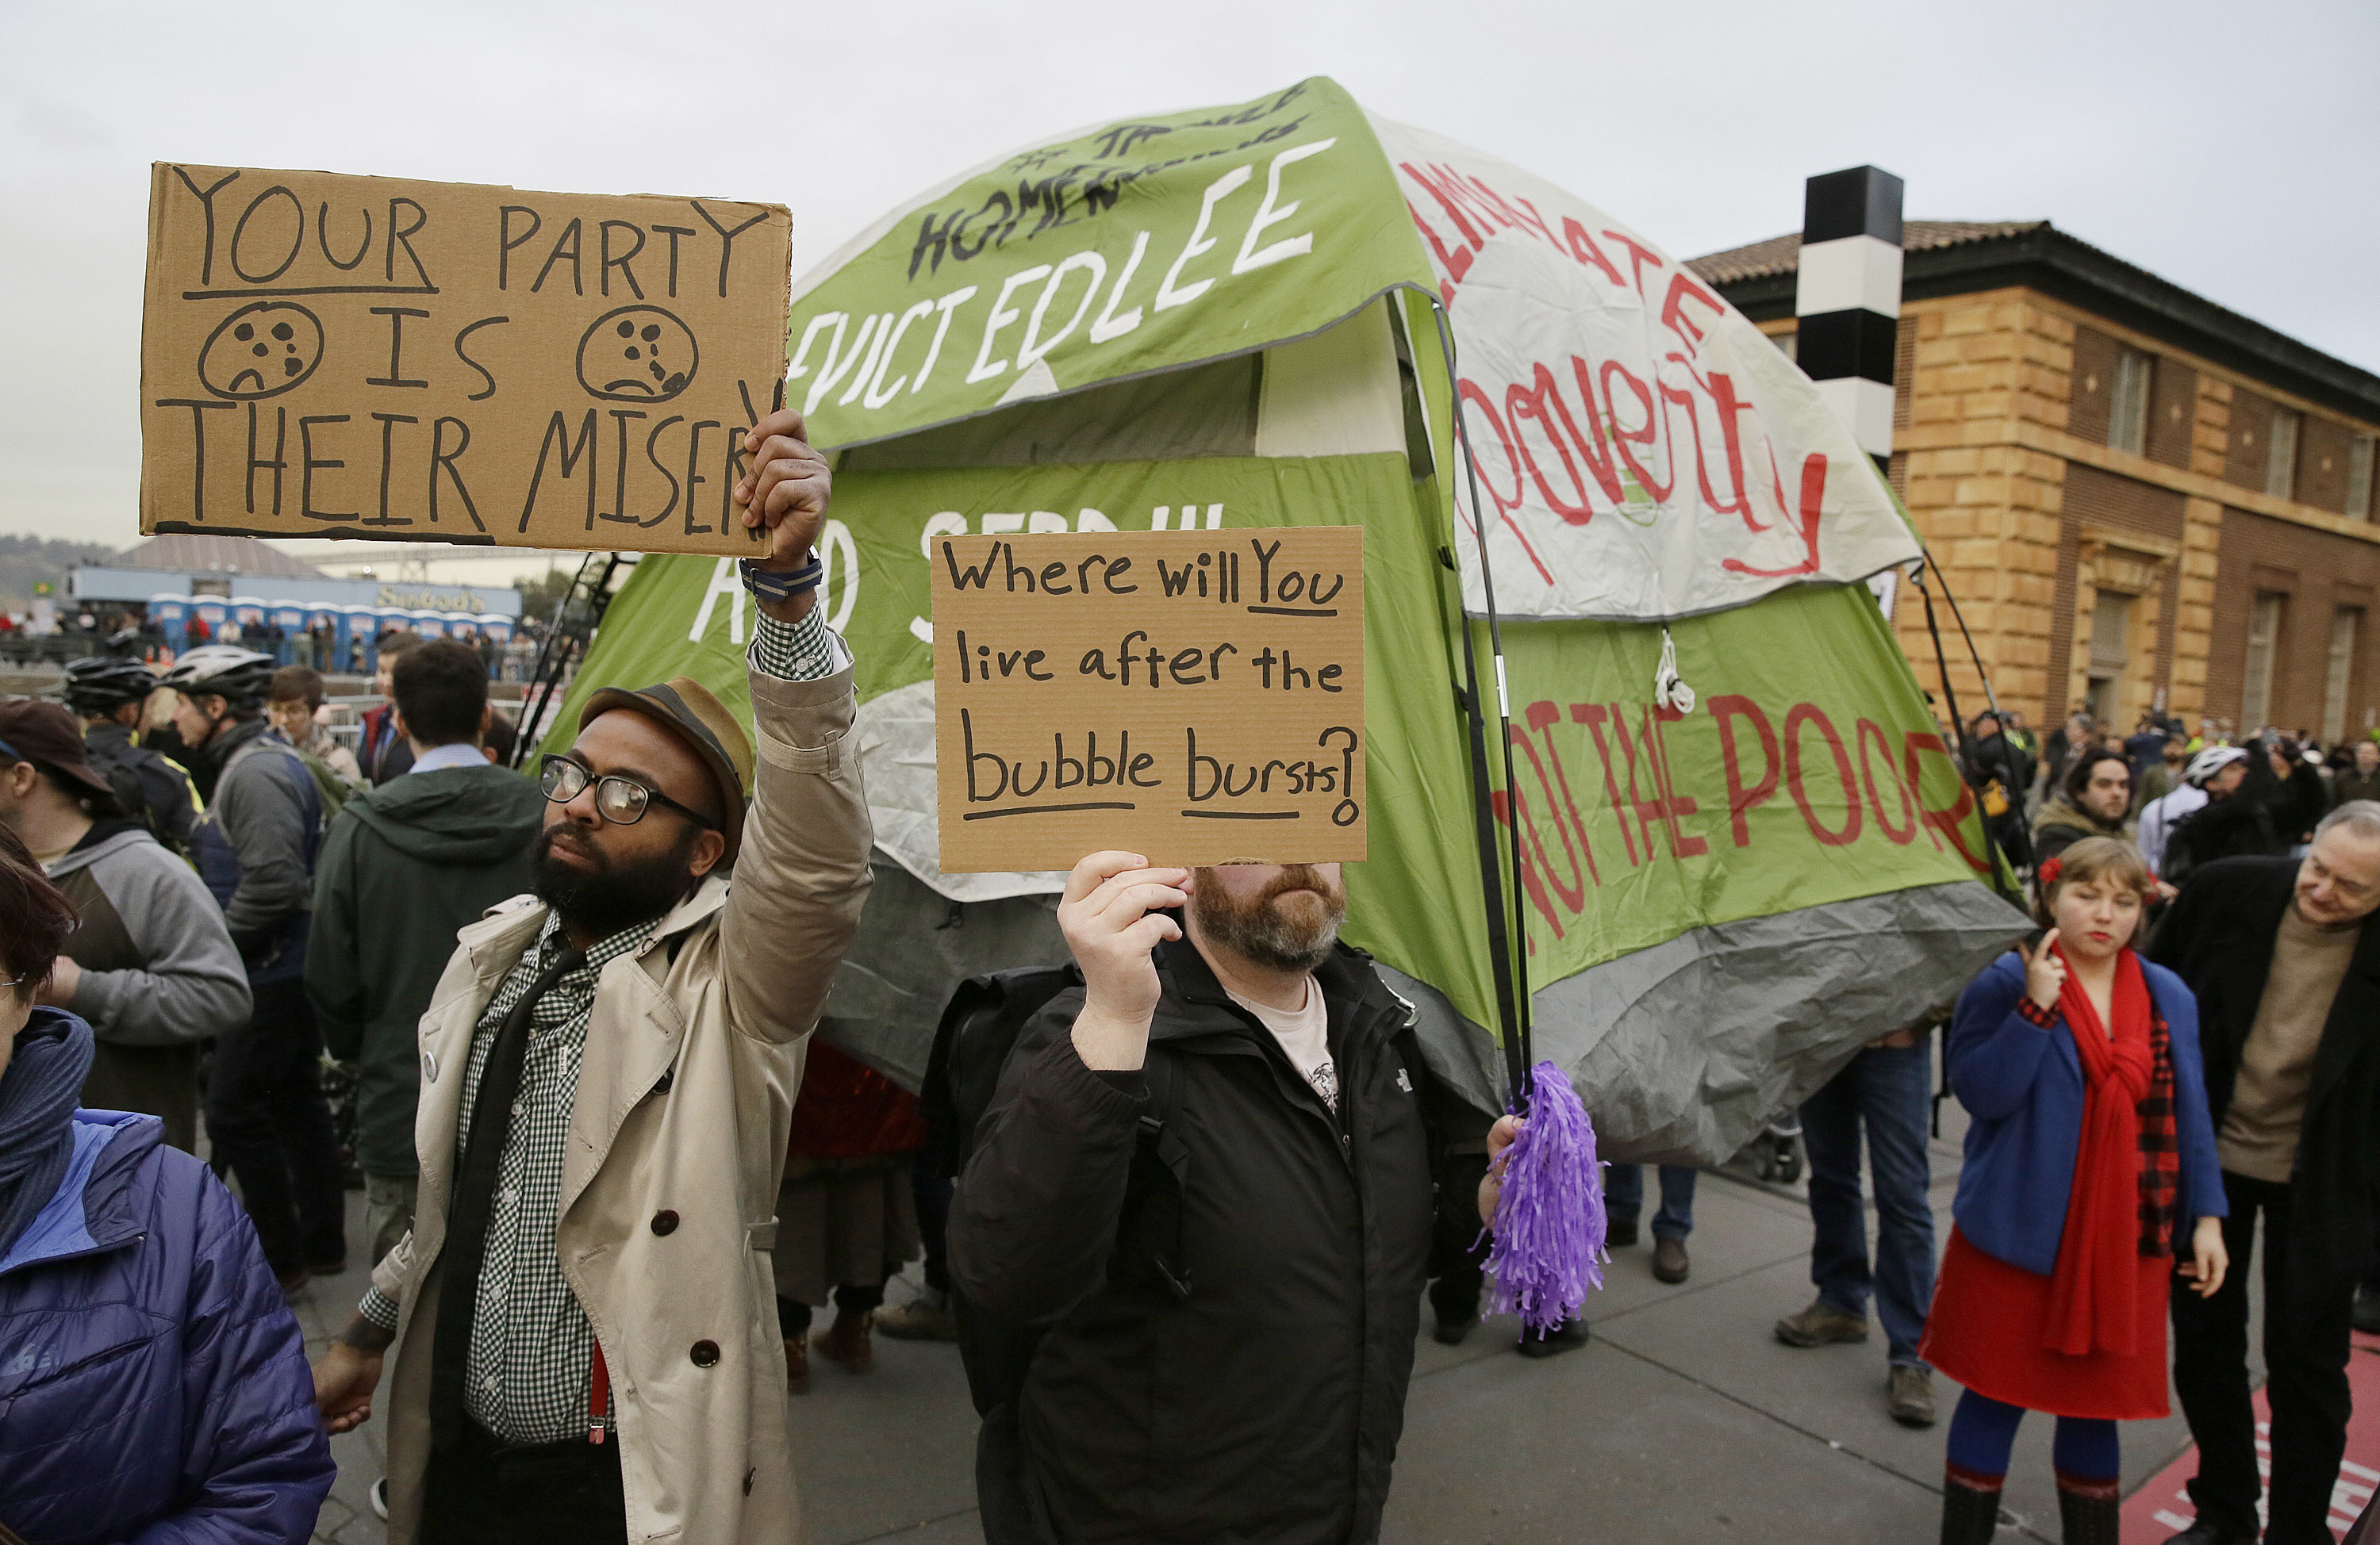 FILE - People hold up signs and a tent during a protest to demand city officials do more to help homeless people in San Francisco, California, Feb. 3, 2016.